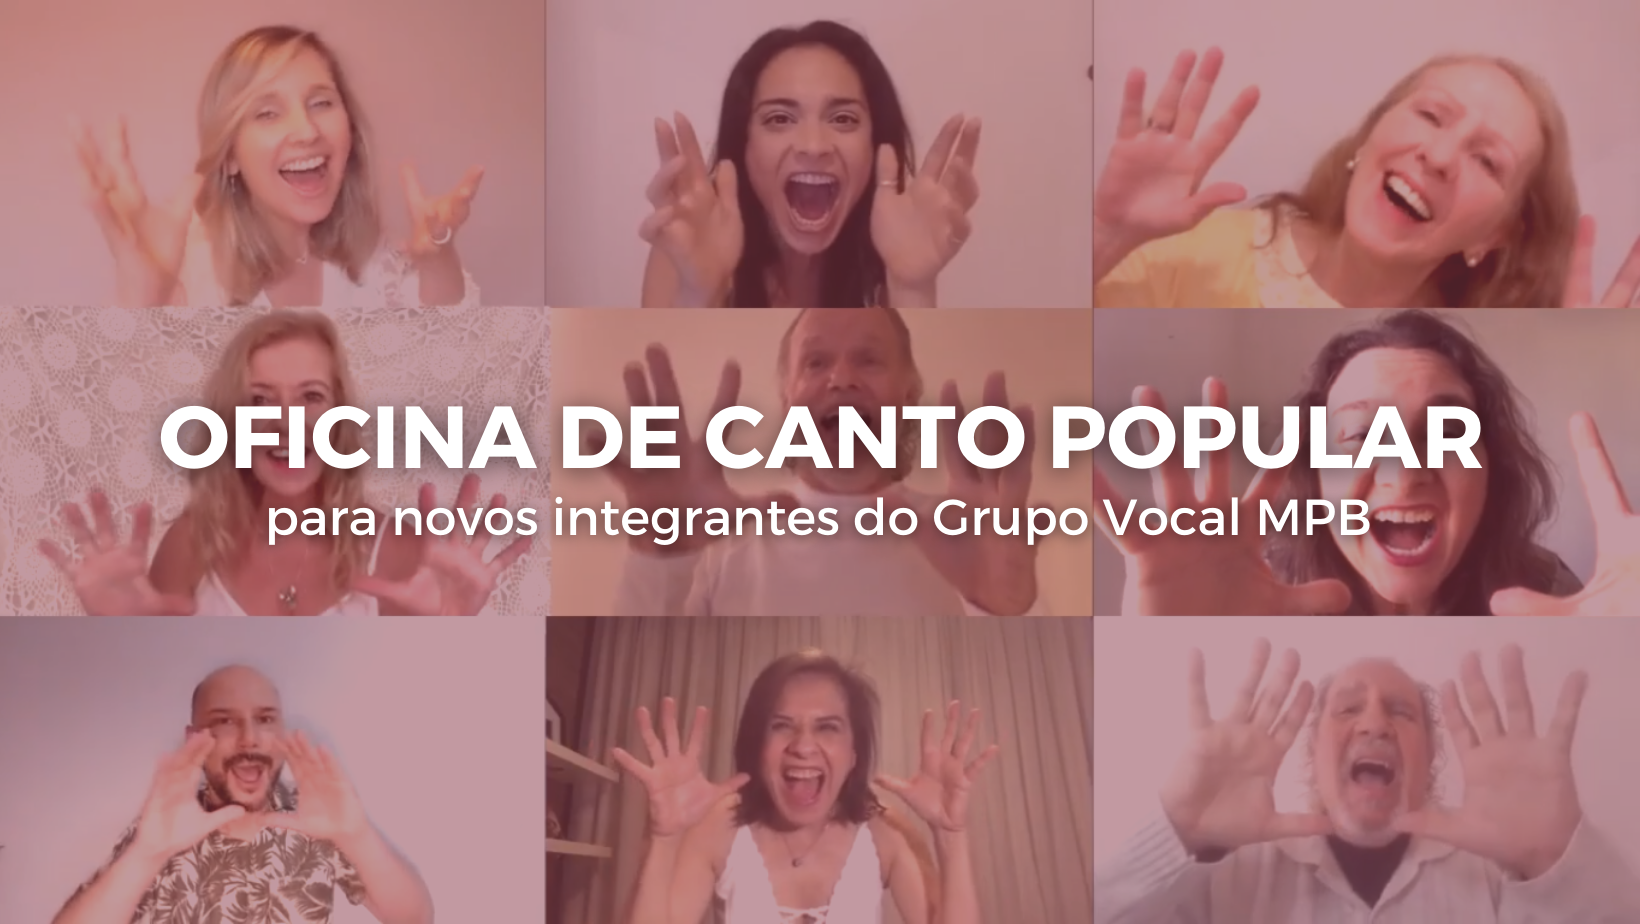 Oficina de Canto Popular Online para novos integrantes do Grupo Vocal MPB